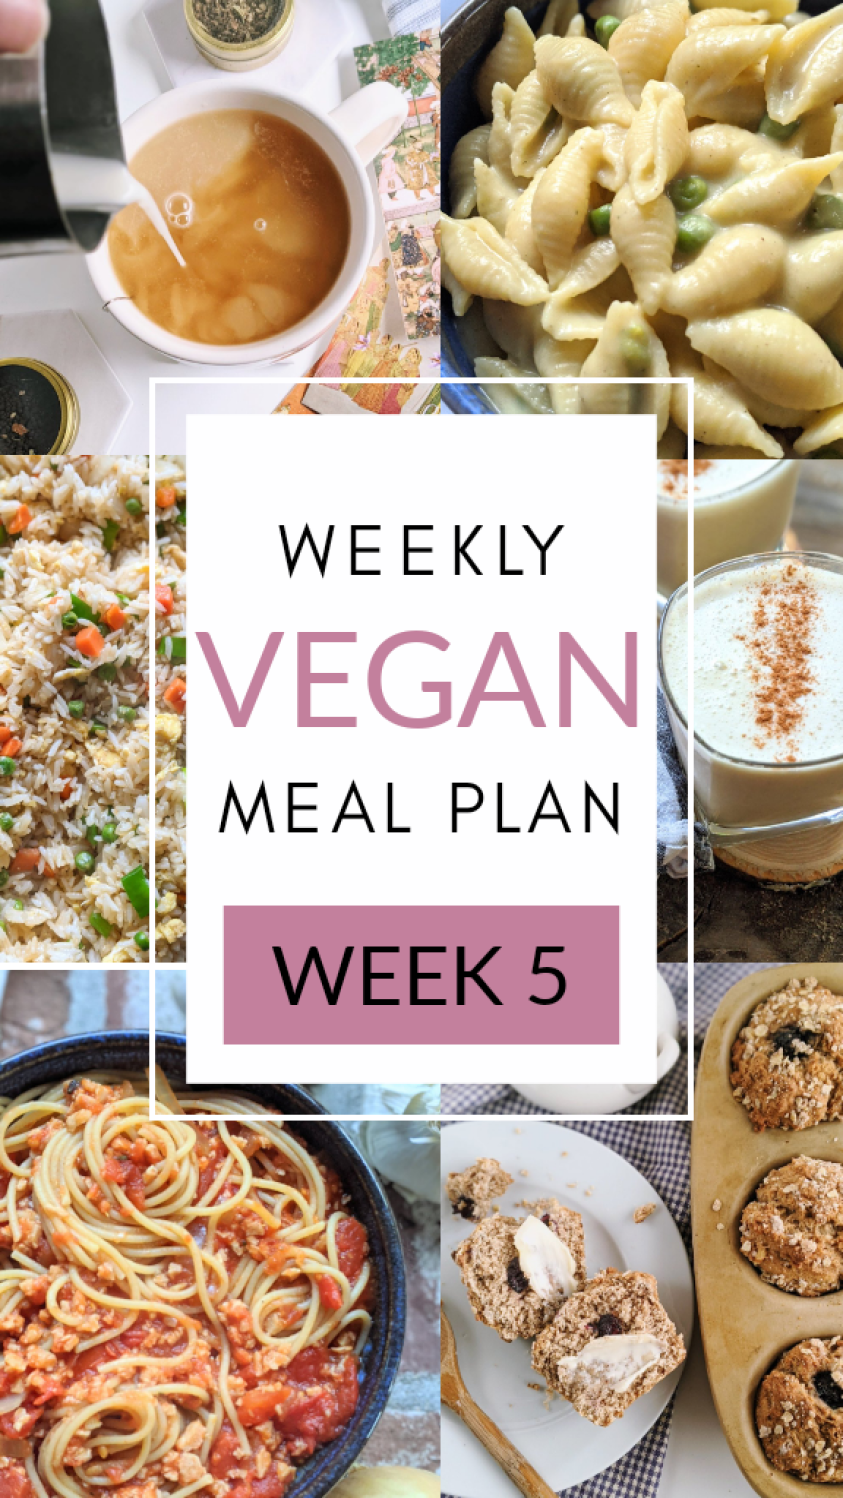 weekly vegan meal prep recipes meal planning veganuary plant based healthy dairy free egg free vegetarian recipes for breakfast lunch dinner and bread meal prep baking